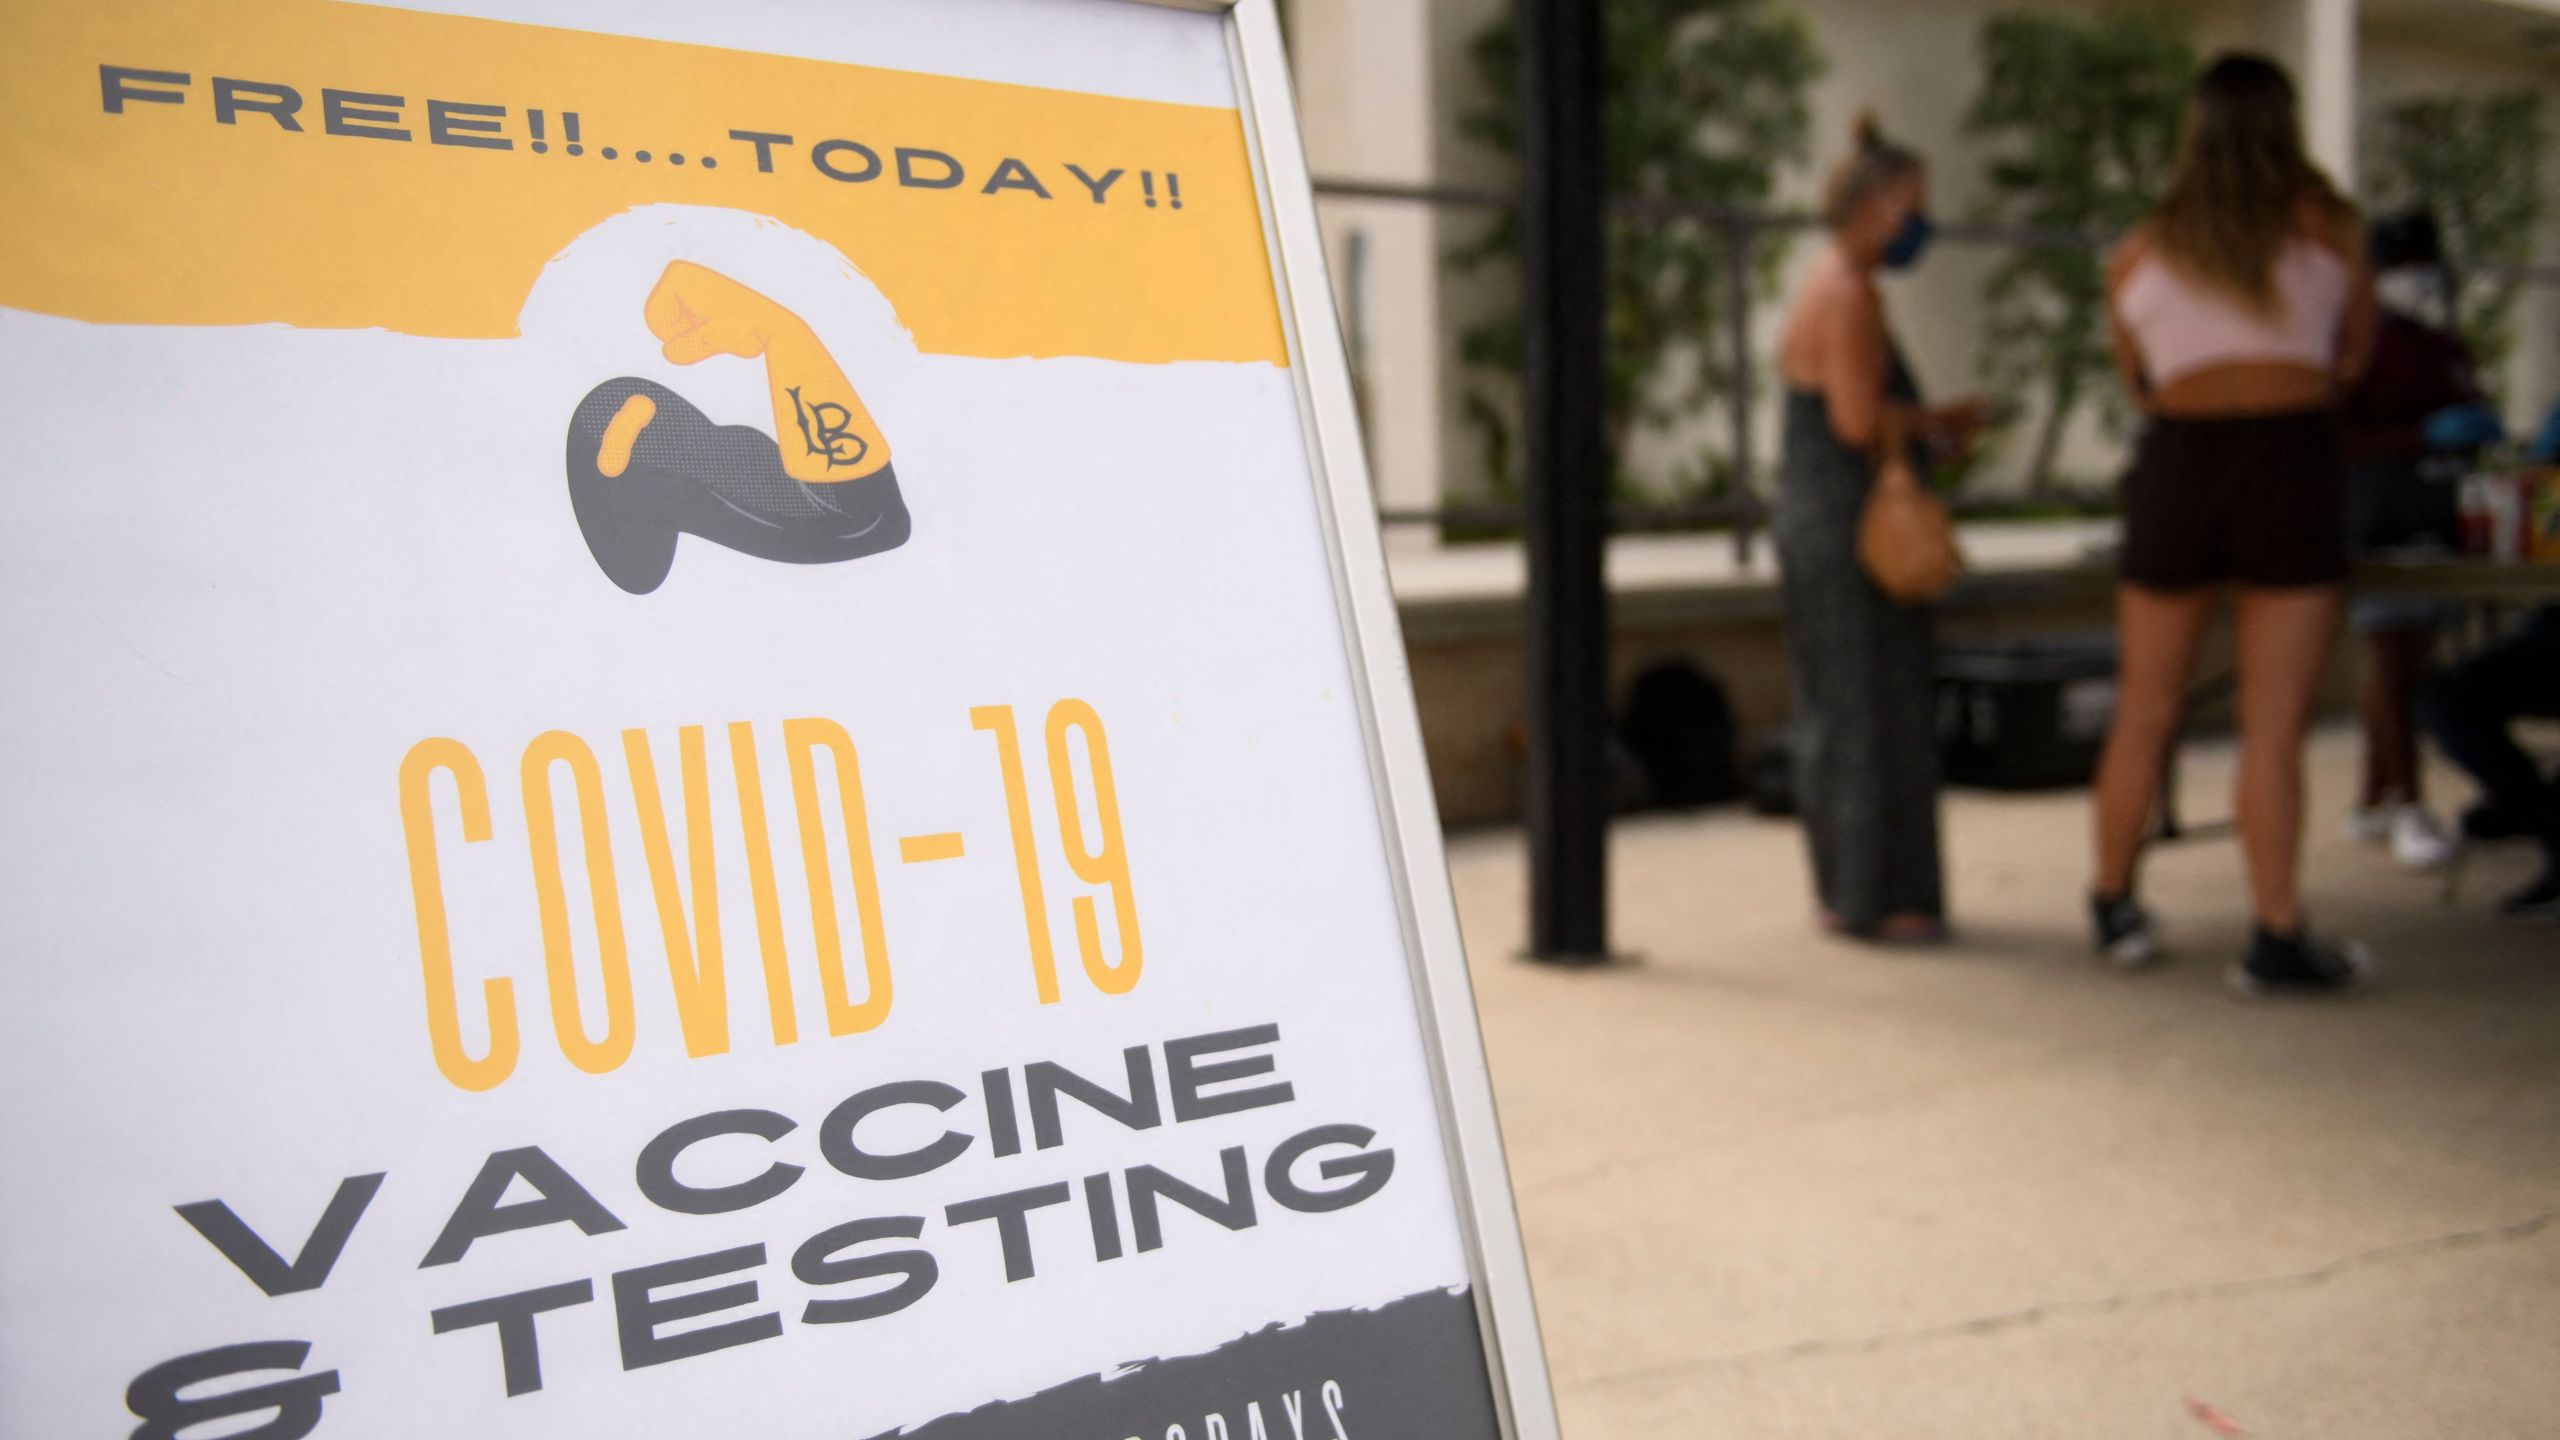 Free COVID-19 vaccine and testing signage is displayed during a City of Long Beach Public Health Covid-19 mobile vaccination clinic at the California State University Long Beach campus on Aug. 11, 2021 in Long Beach. (PATRICK T. FALLON/AFP via Getty Images)